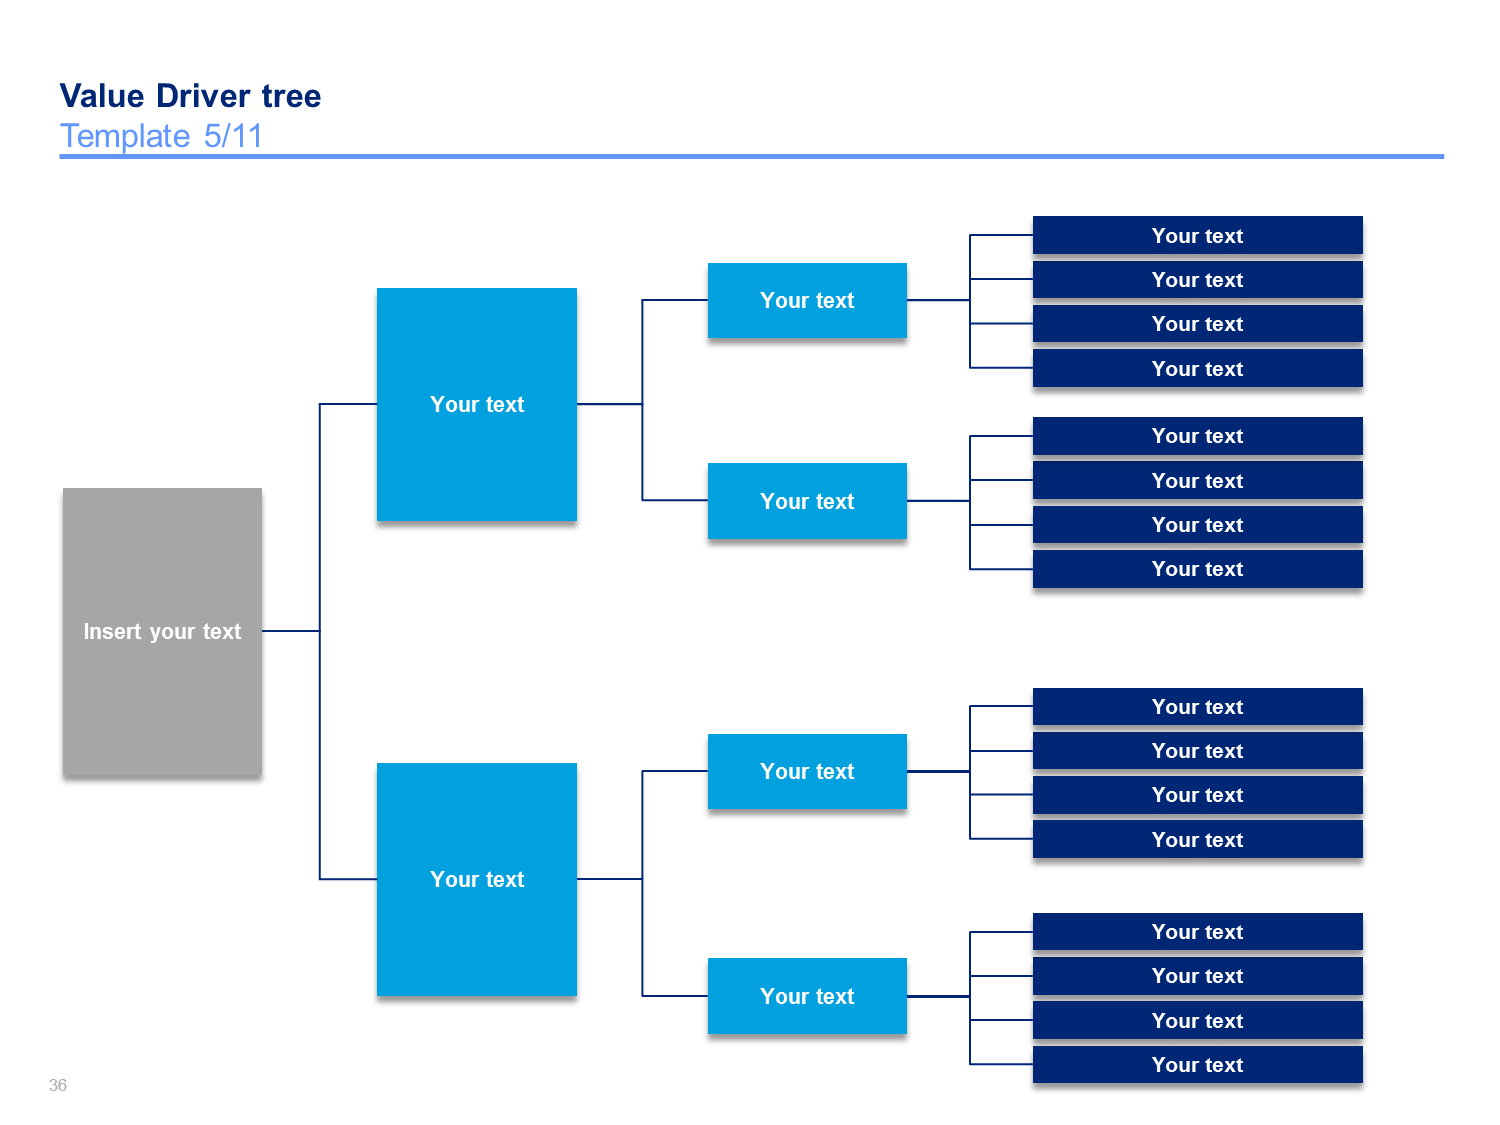 visio tree diagram template wiring guitar fender decision templates and reuse